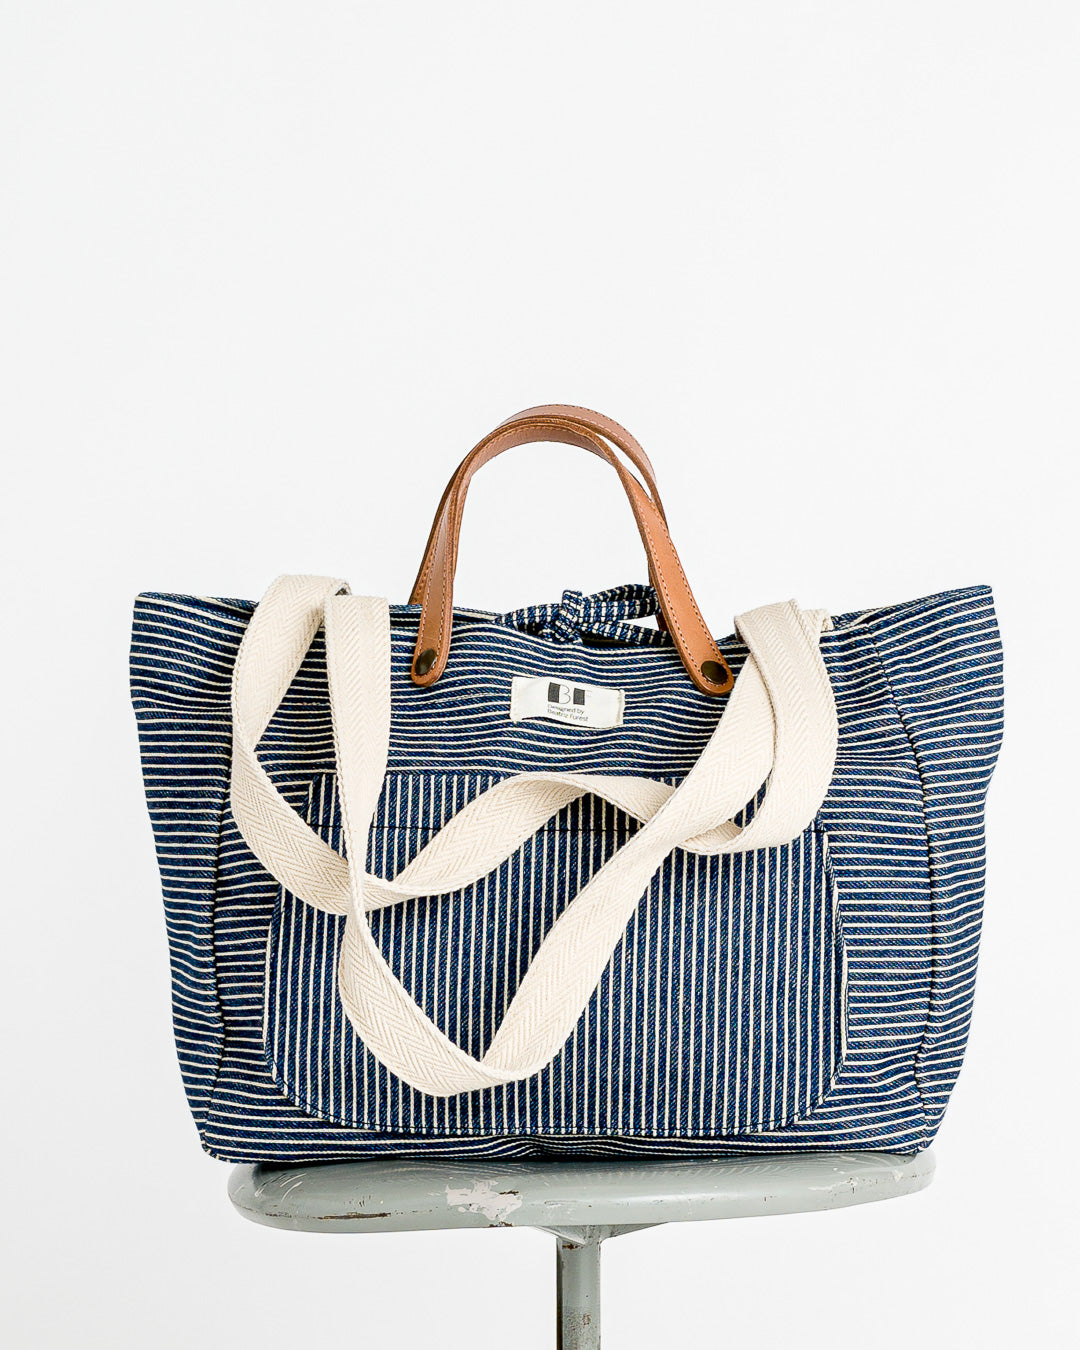 Beatriz Furest // Tasche Stripes Lona Navy Rayas